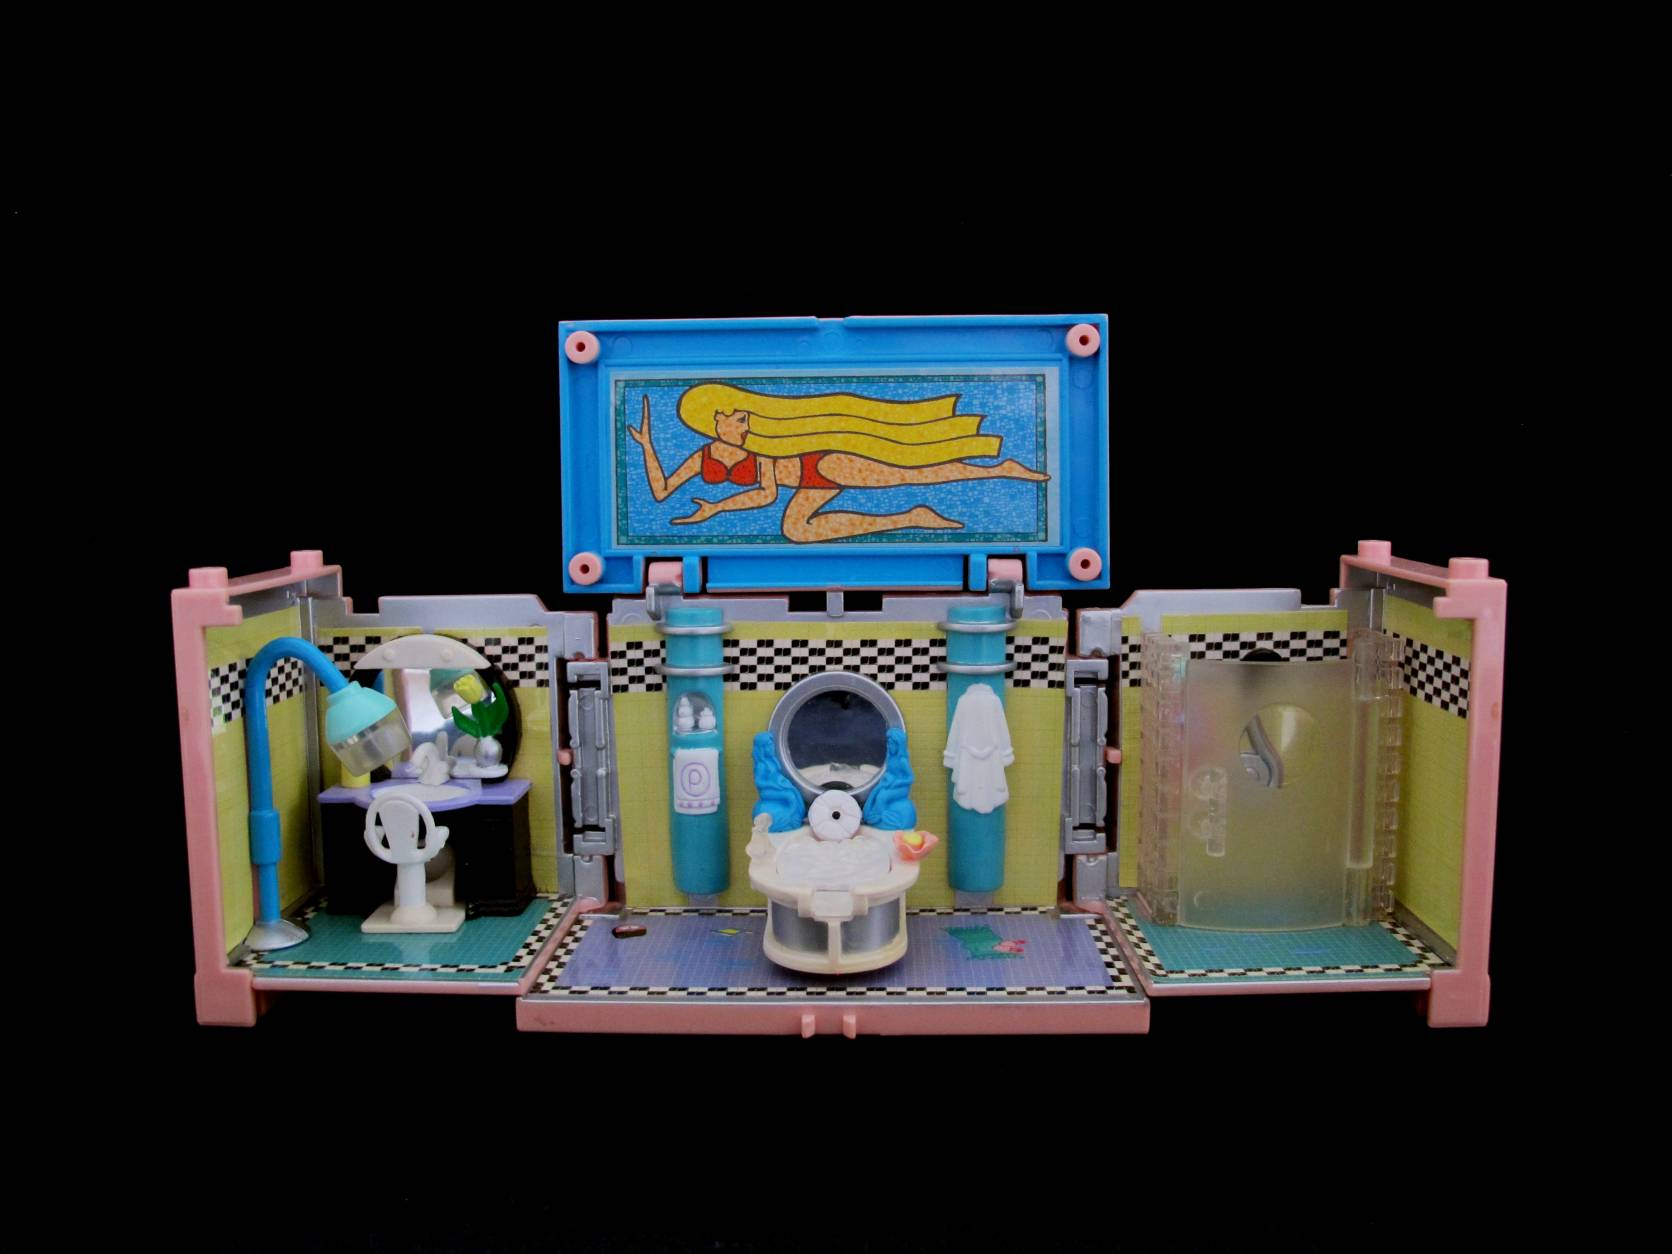 1999 Polly Pocket Dreambuilders Deluxe Mansion bathroom